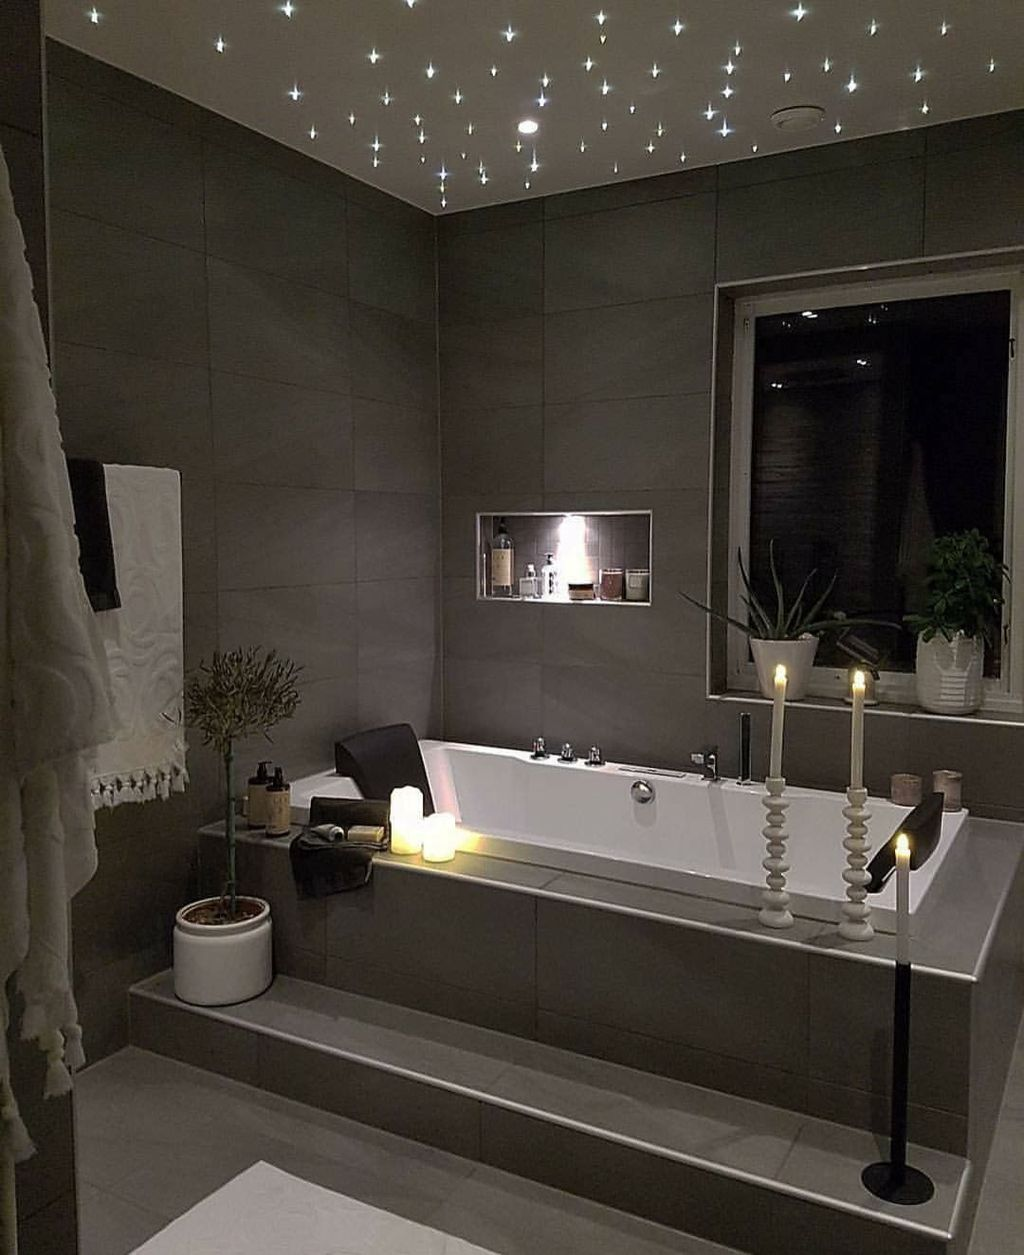 Inspiring Unique Bathroom Ideas That You Should Try 30